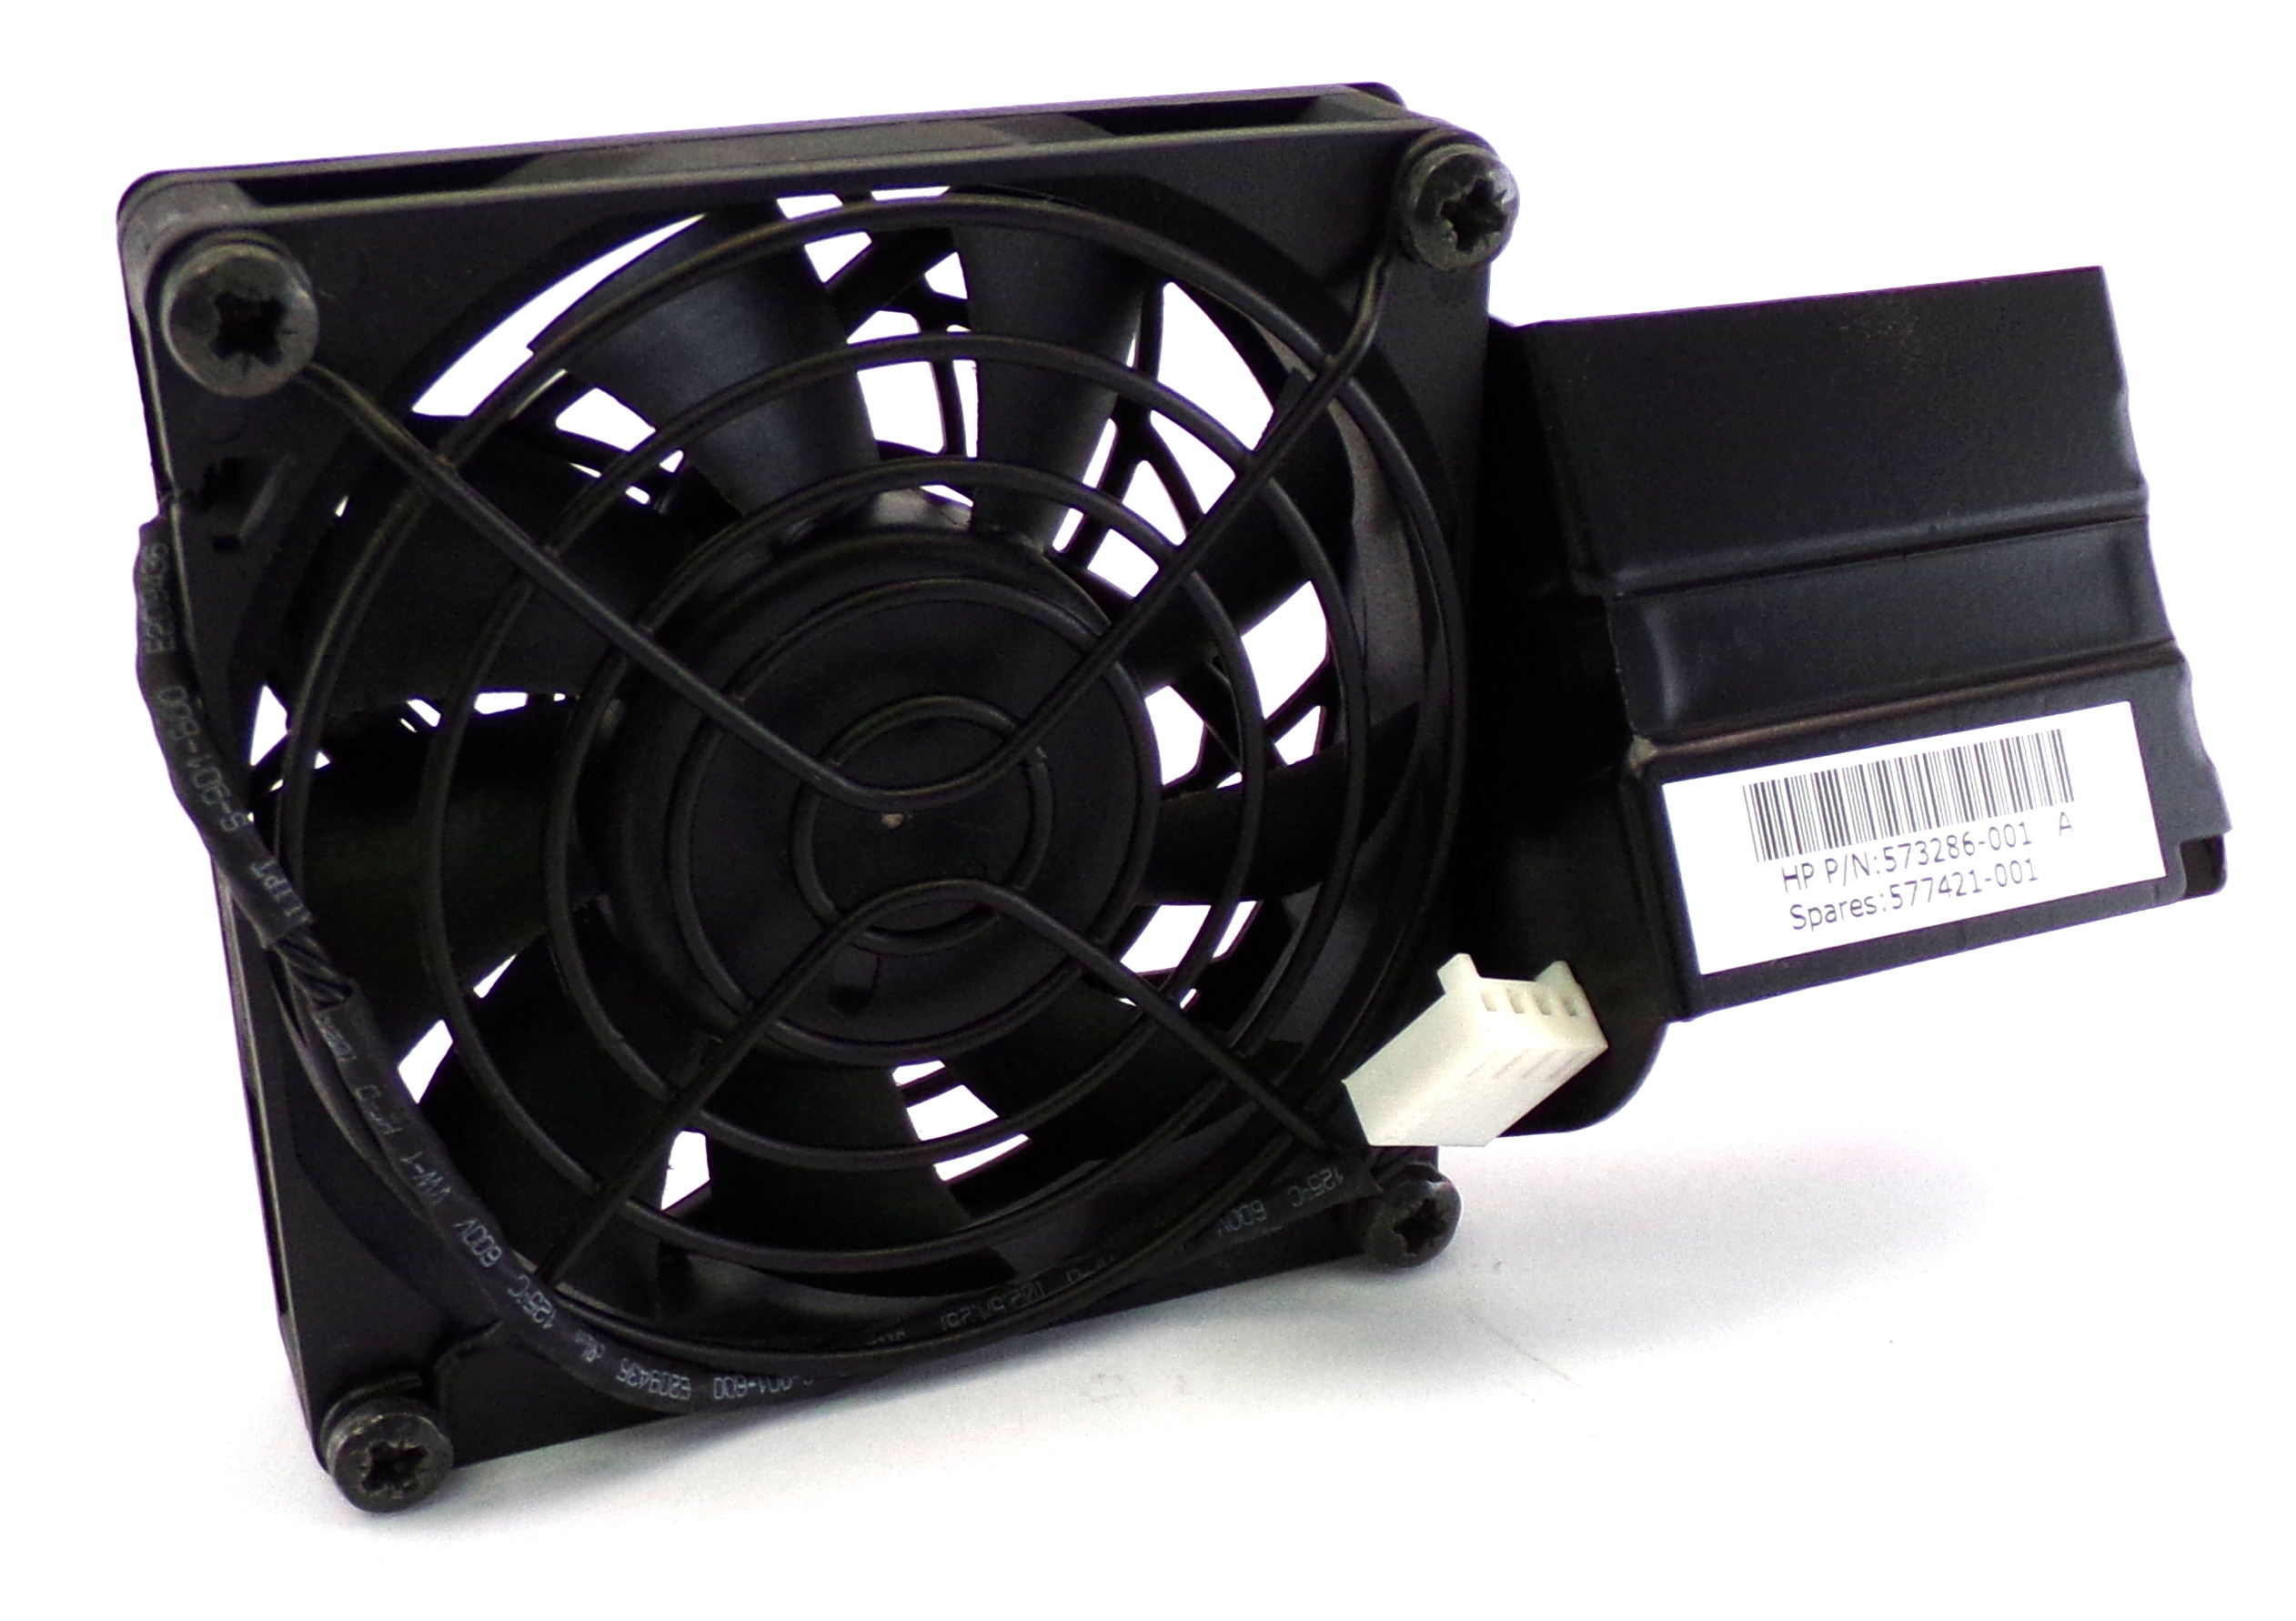 HP 577421-001 Workstation Z400 liquid cooling module fan with support bracket